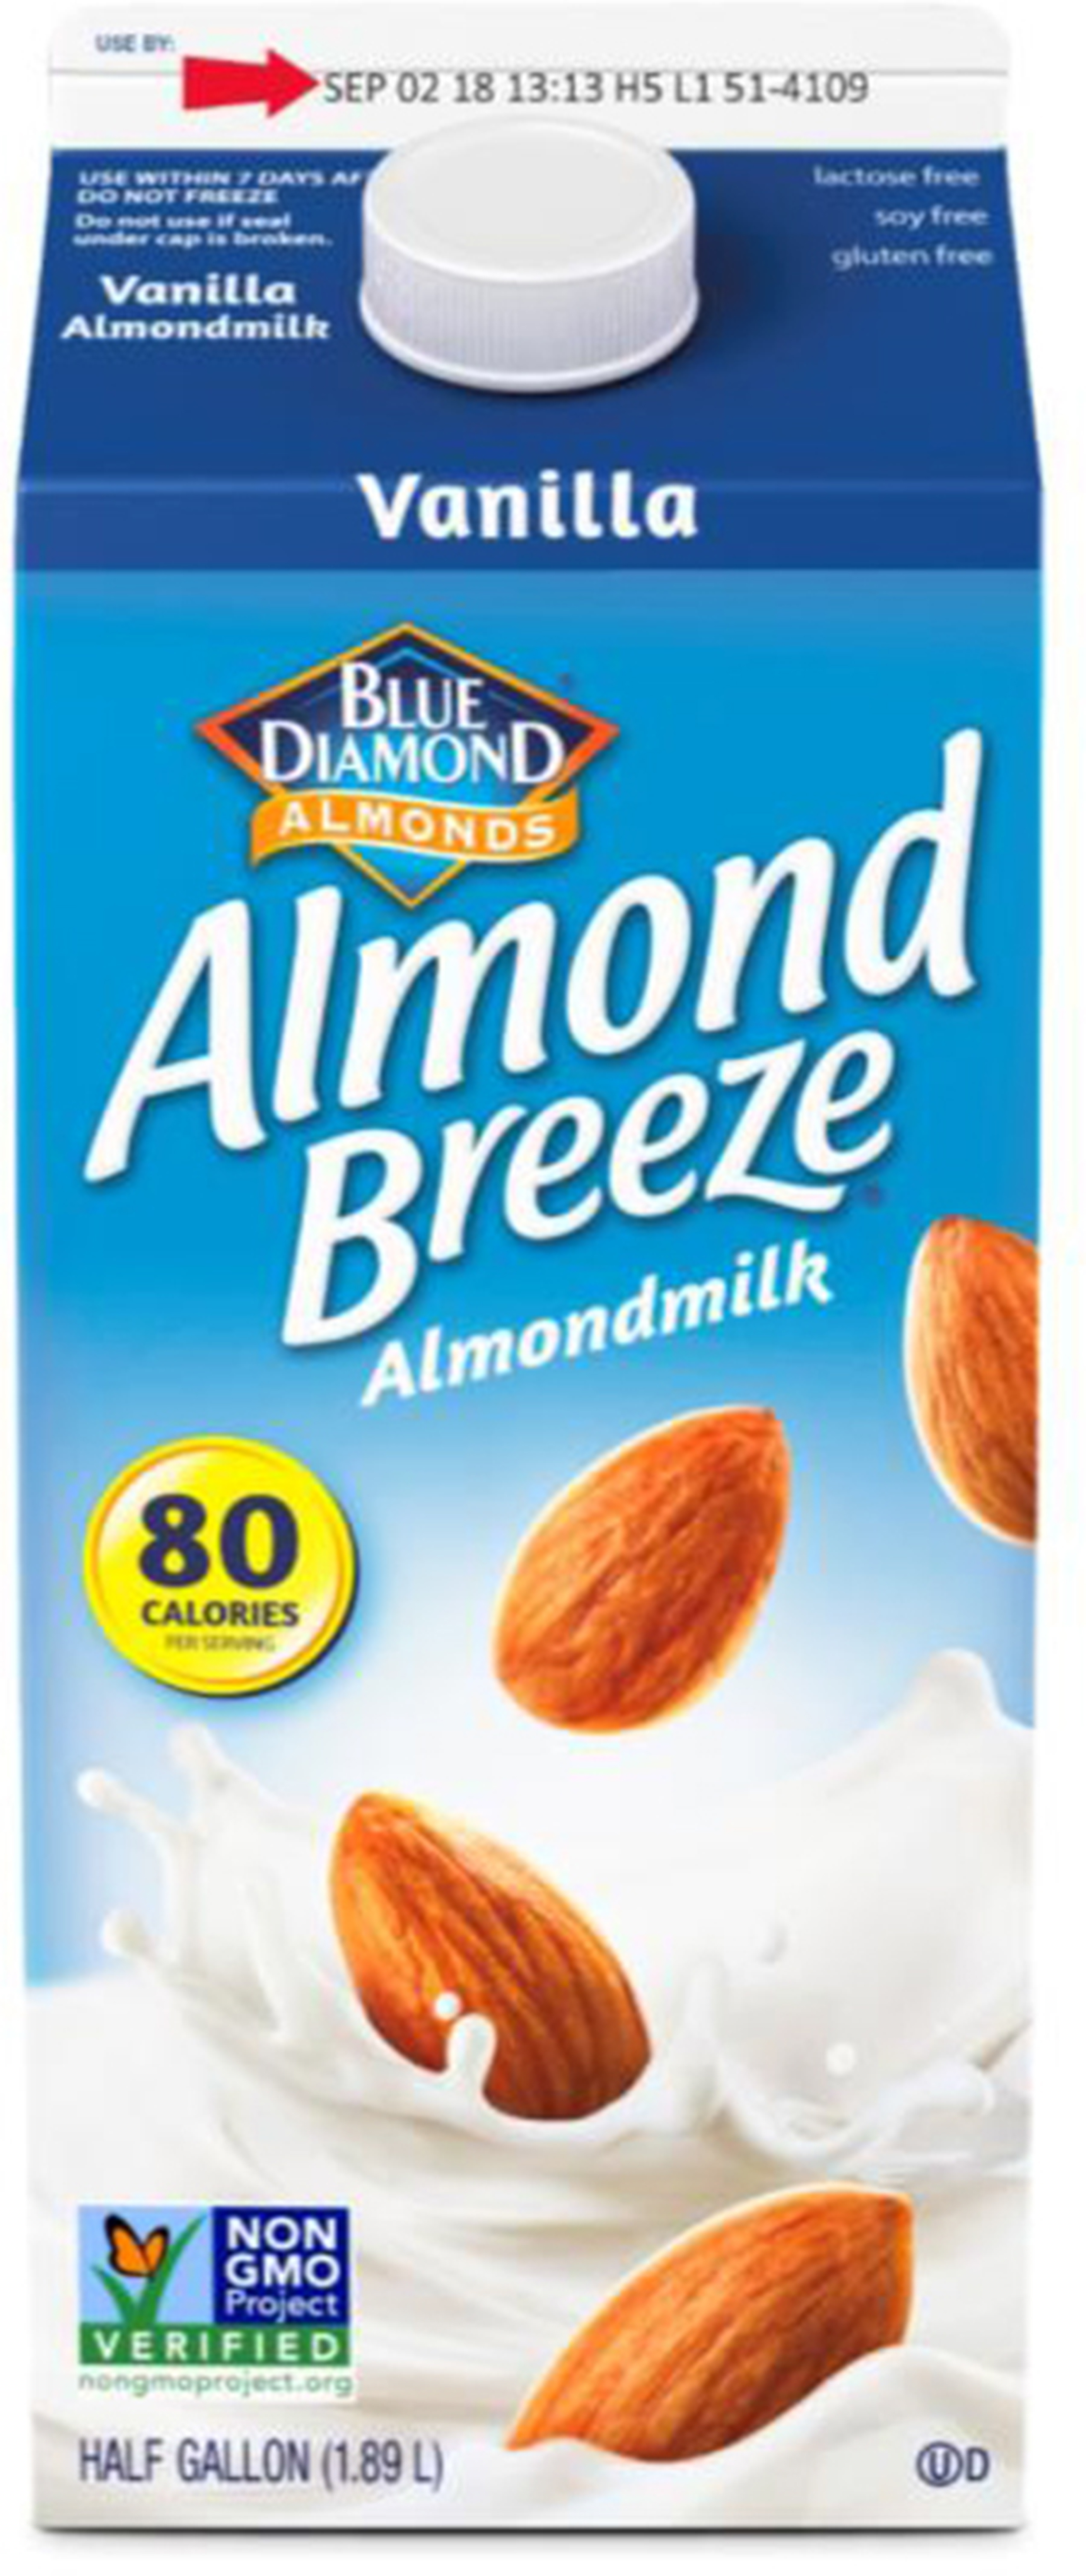 Almond milk recalled because it might have actual milk in it